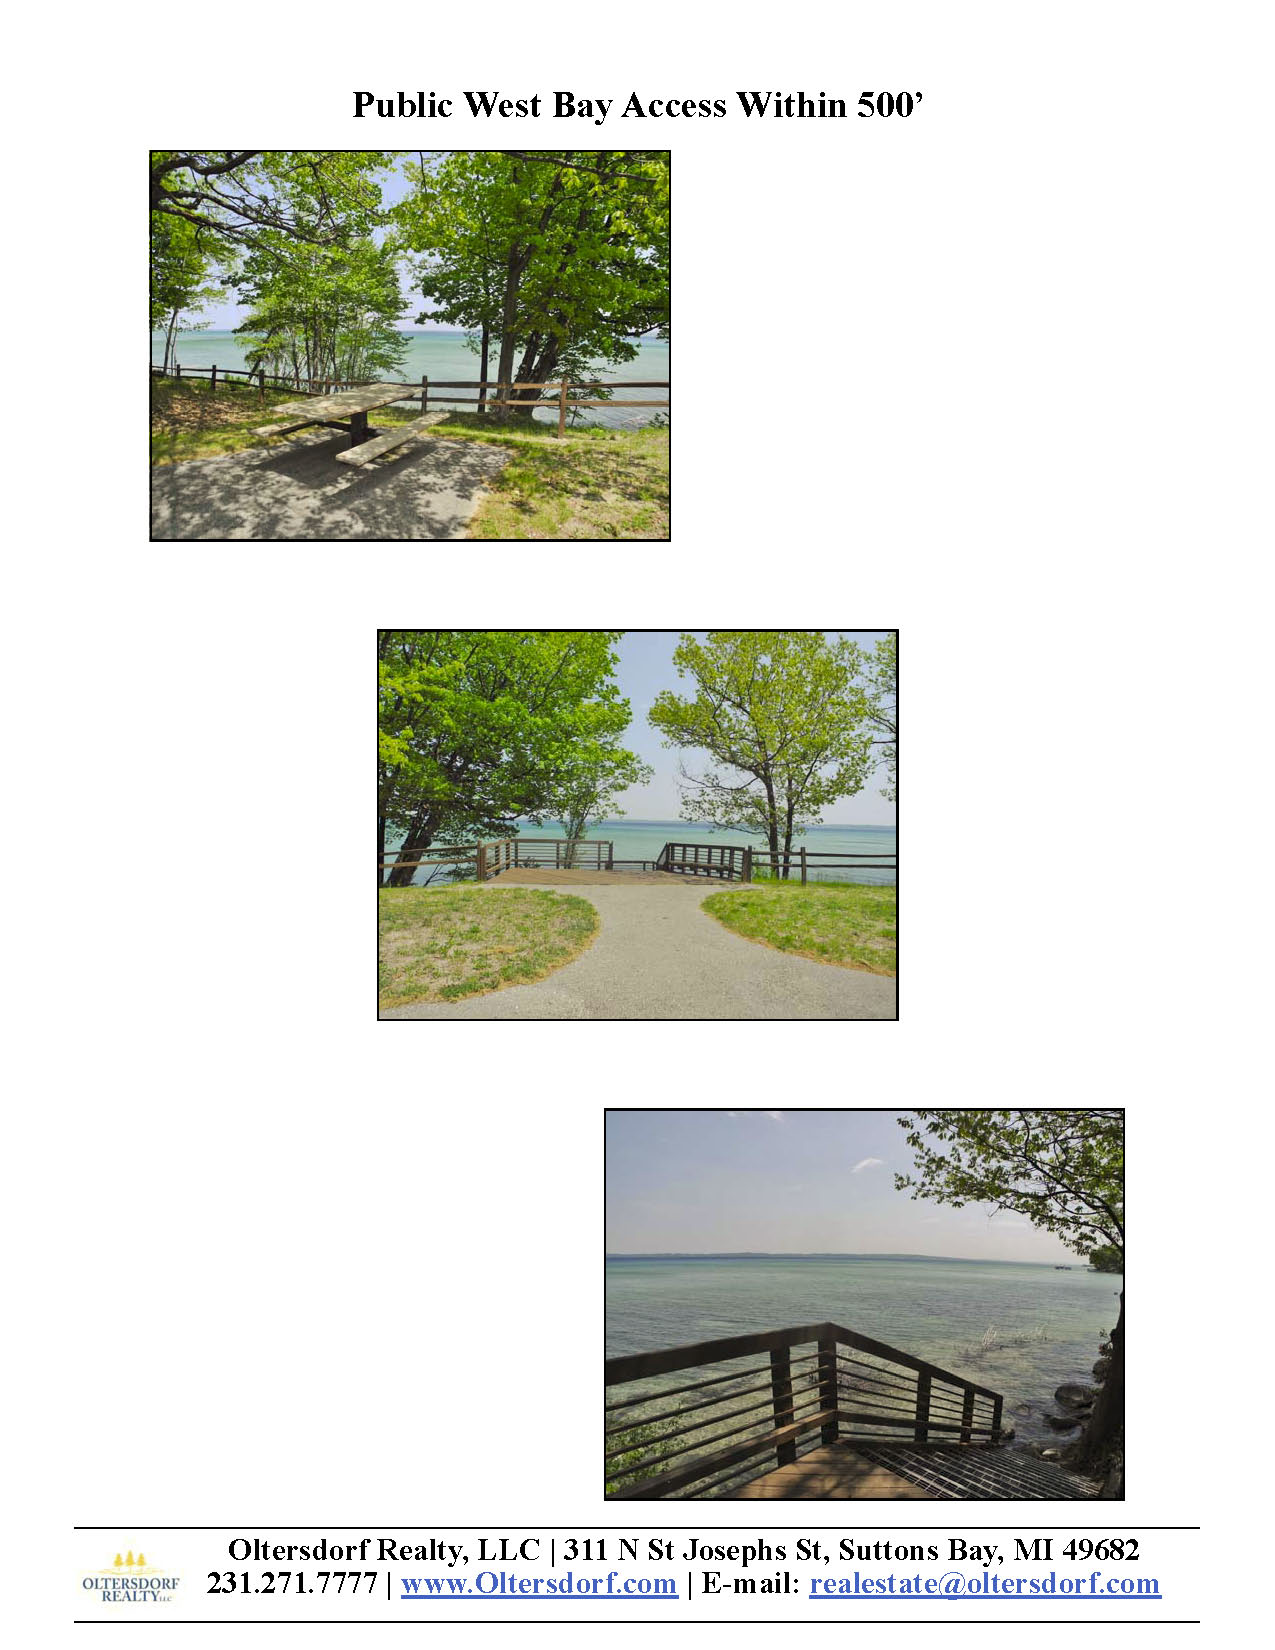 10142 S West Bay Shore Drive, Traverse City, MI - For sale by Oltersdorf Realty LLC - Marketing Packet (7).jpg